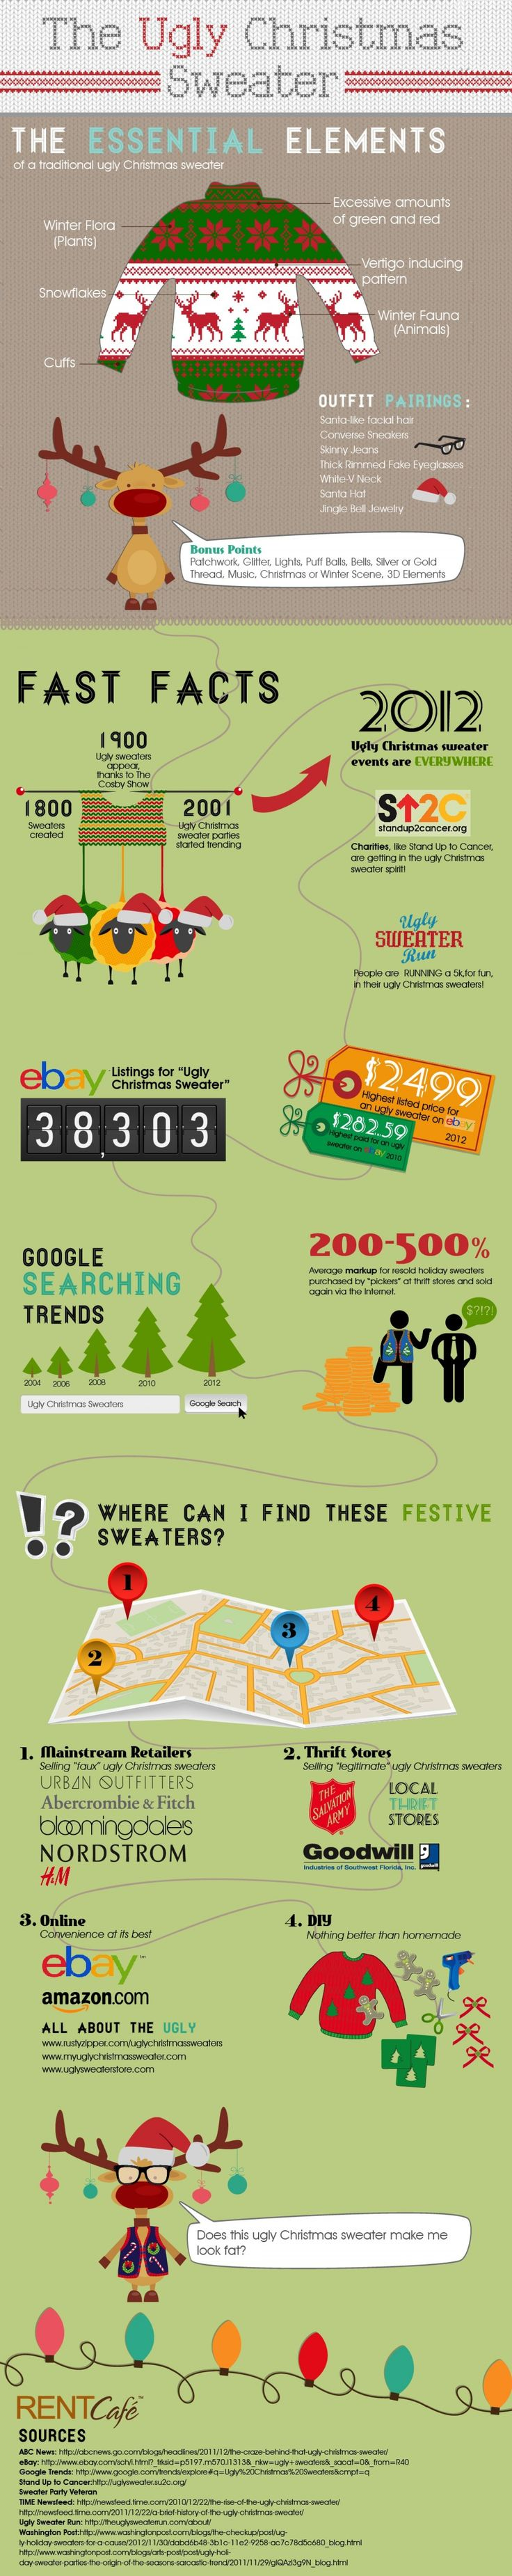 Ugly Christmas Sweater Infographic And Fun Christmas Facts